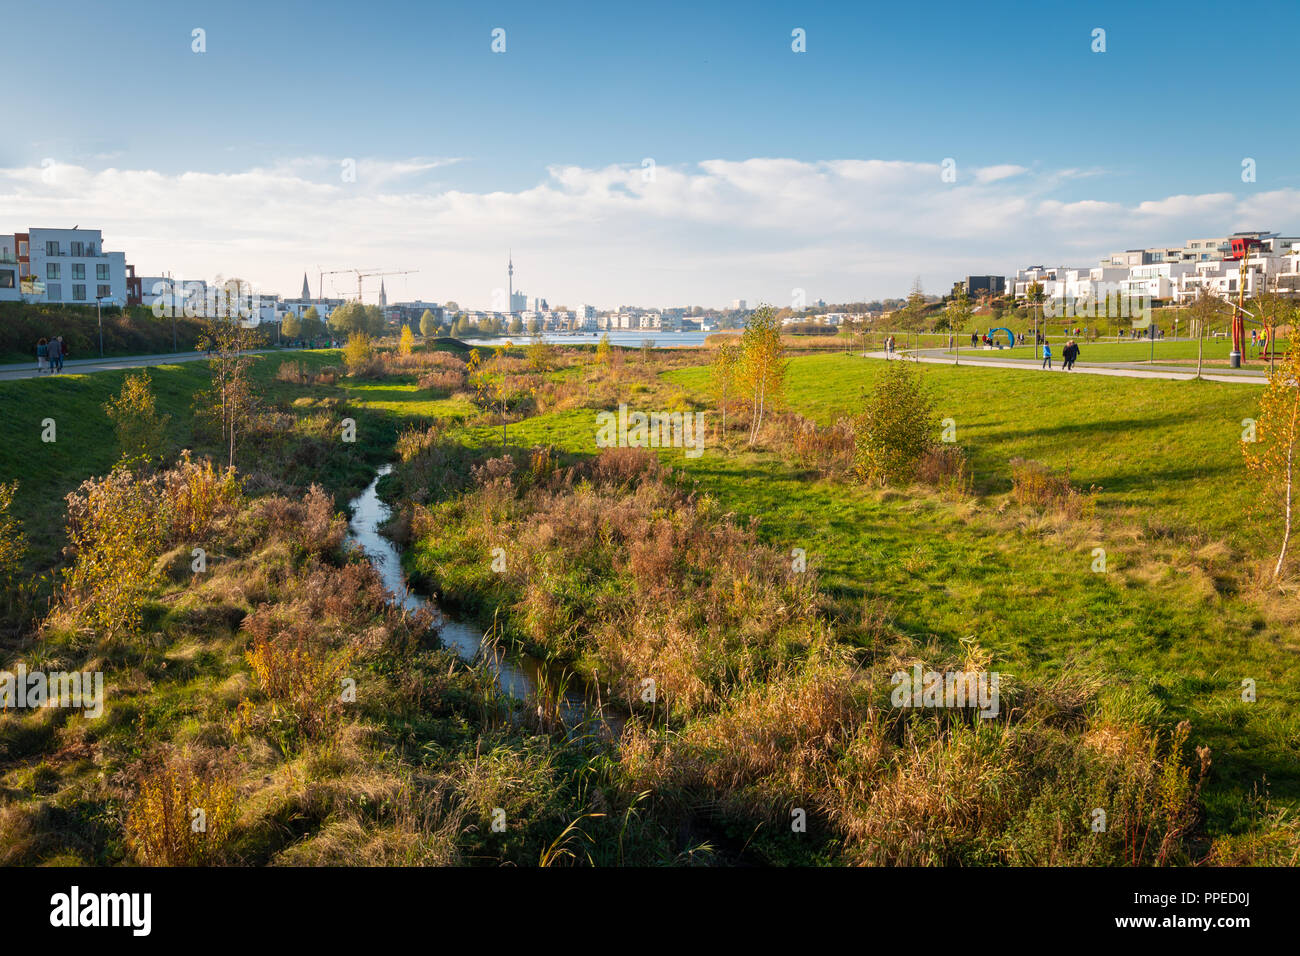 Panorama of Phoenixsee in the German city of Dortmund on a sunny afternoon in autumn - Stock Image